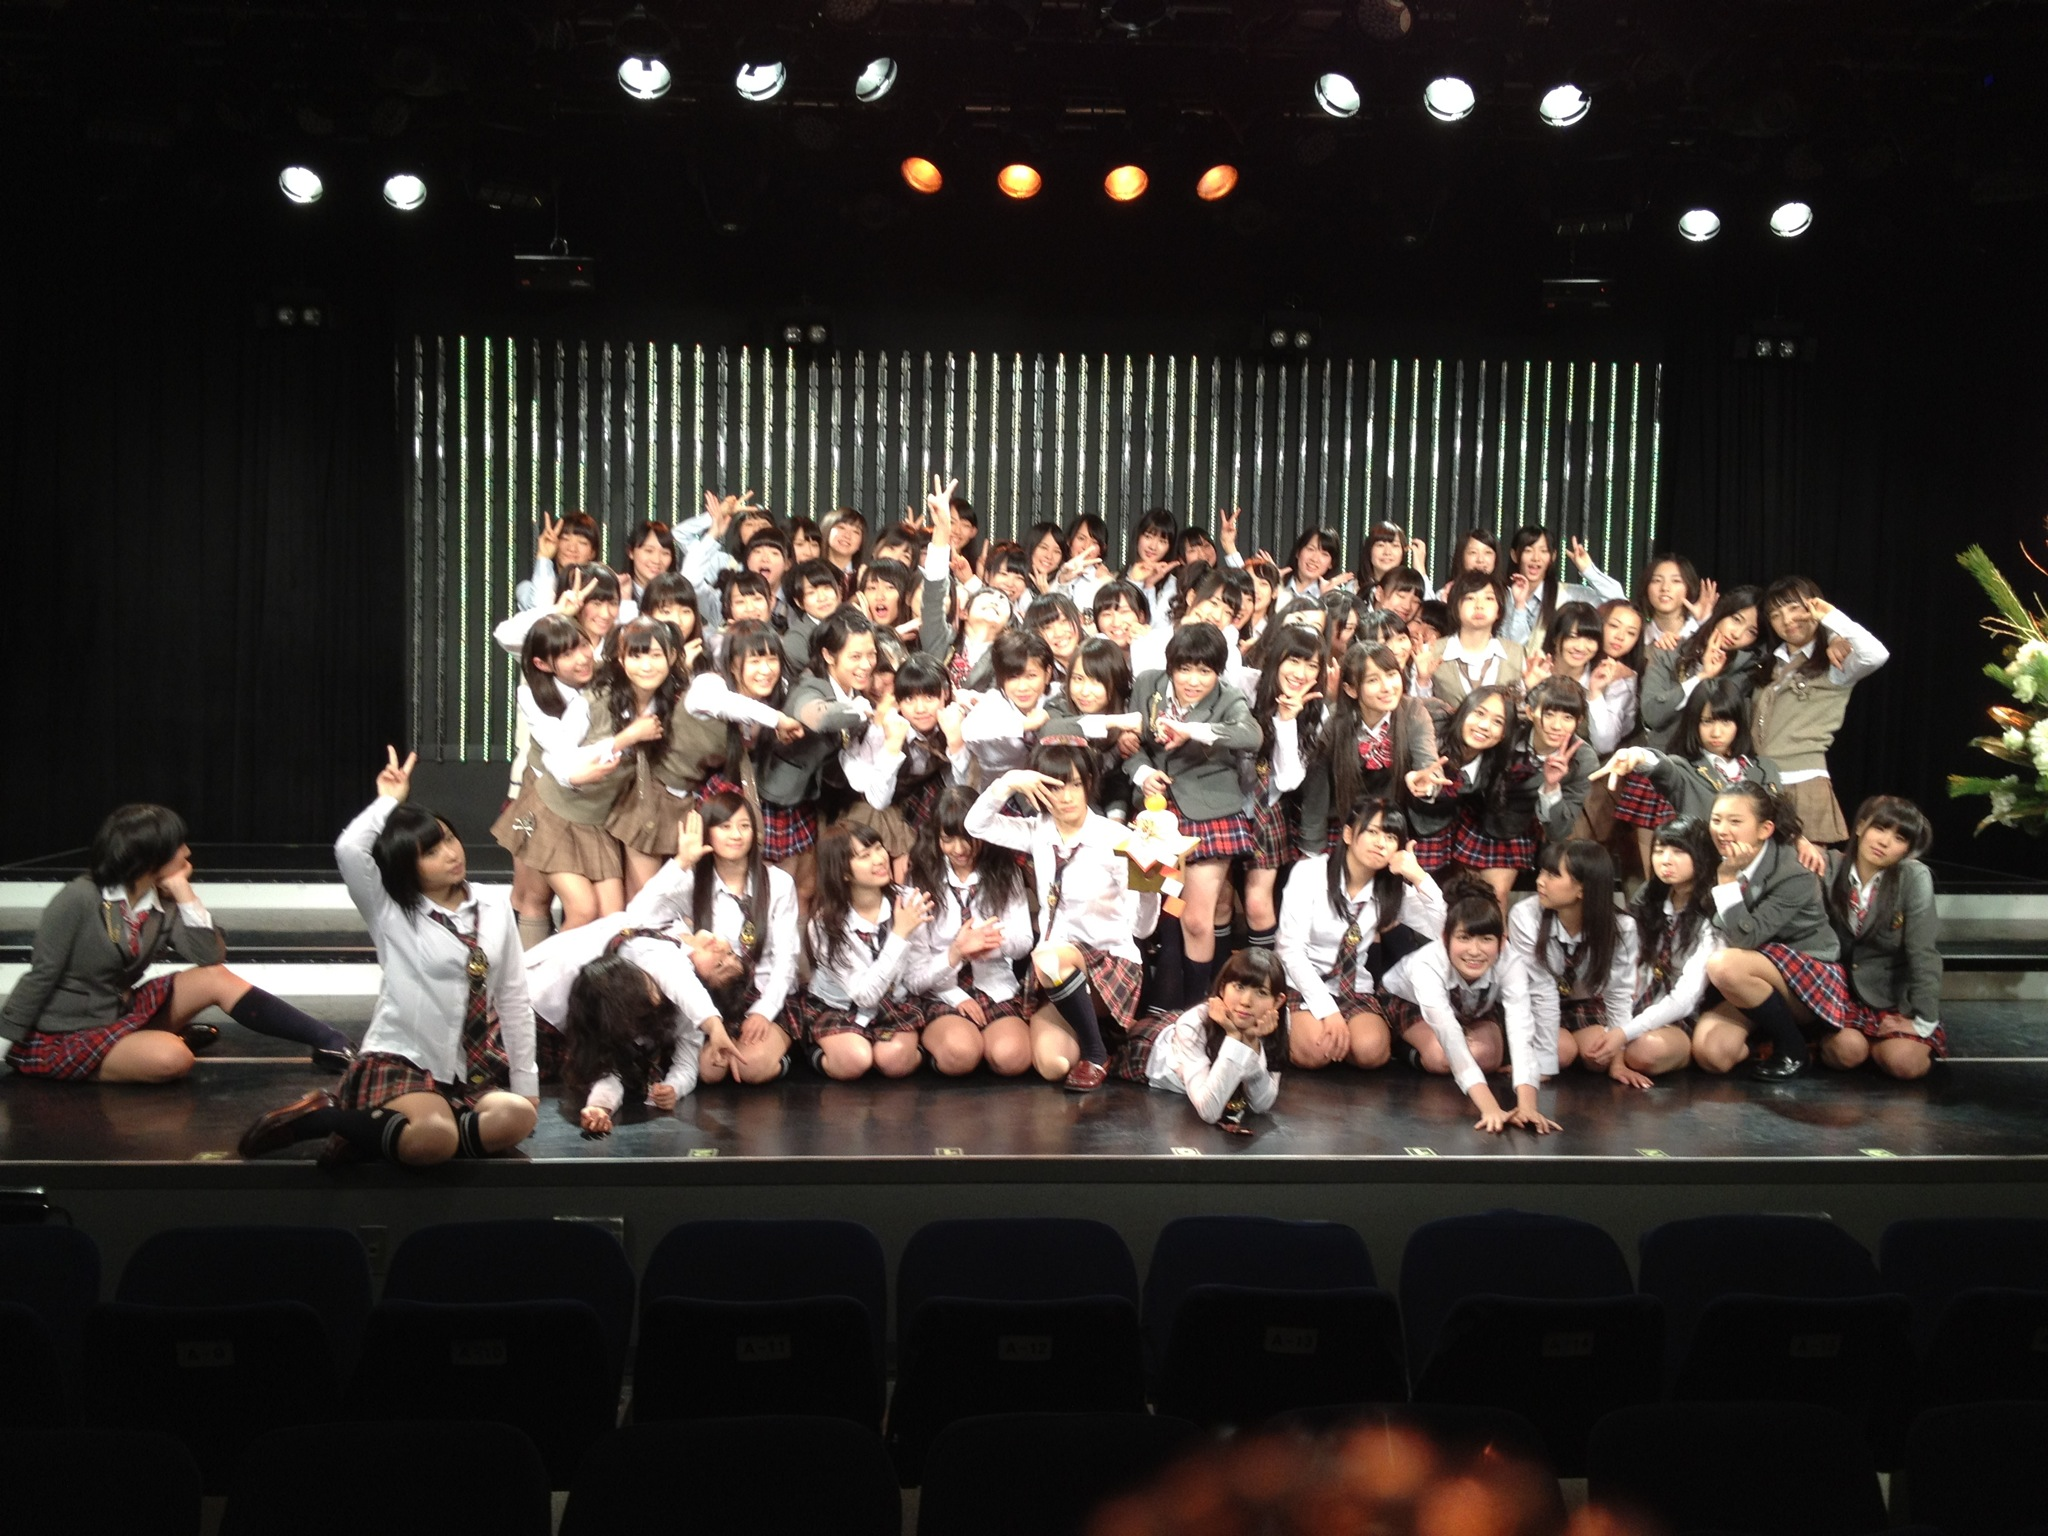 NMB48 family whacky